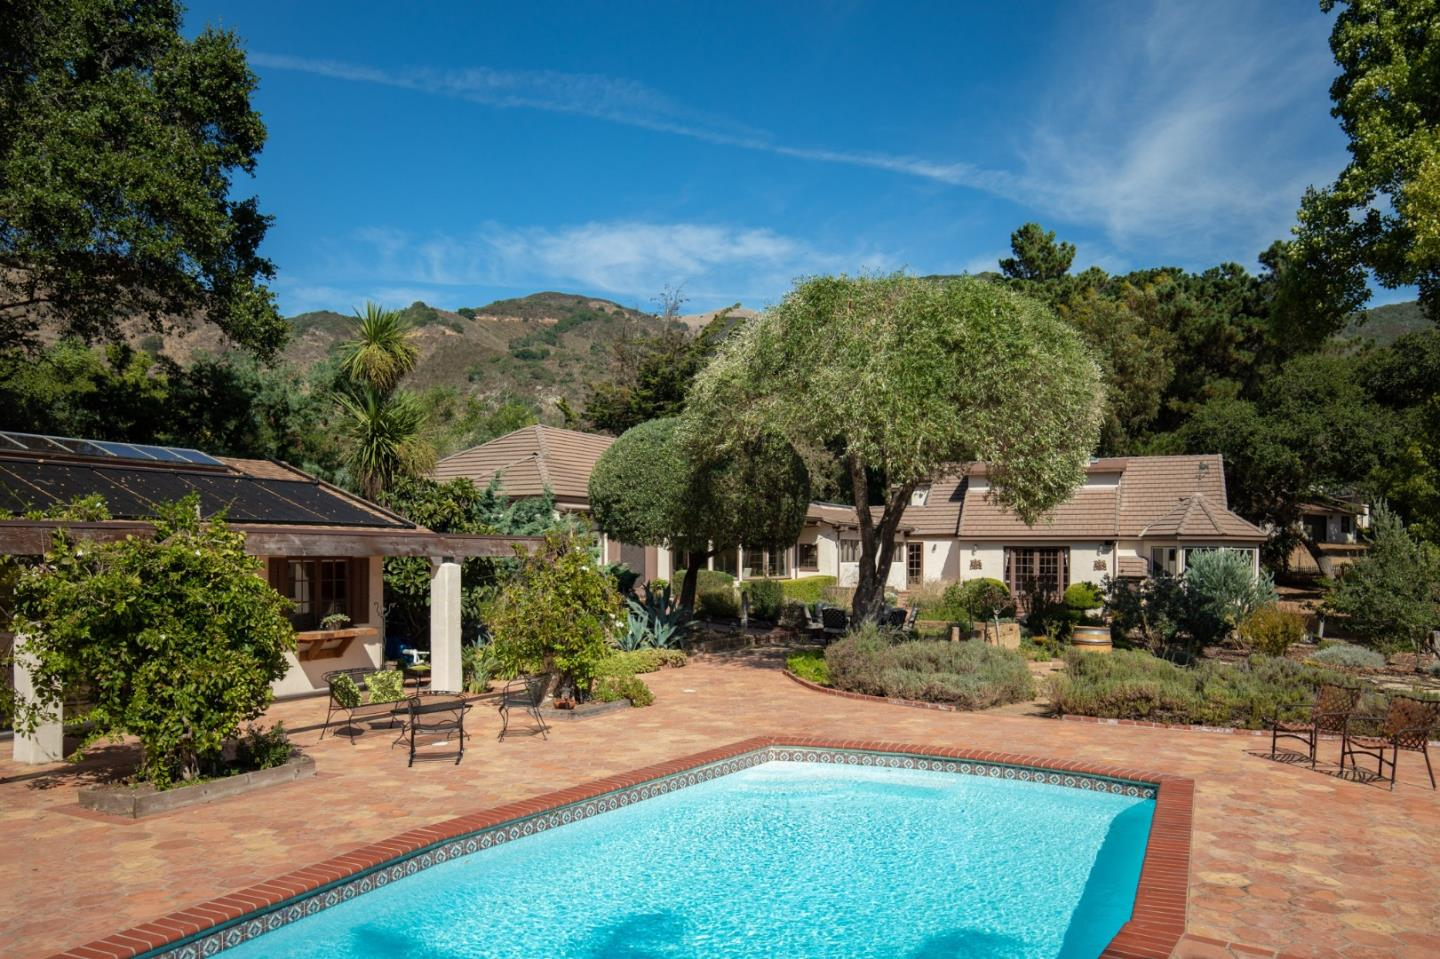 Property for sale at 14 Miramonte RD, Carmel Valley,  California 93924